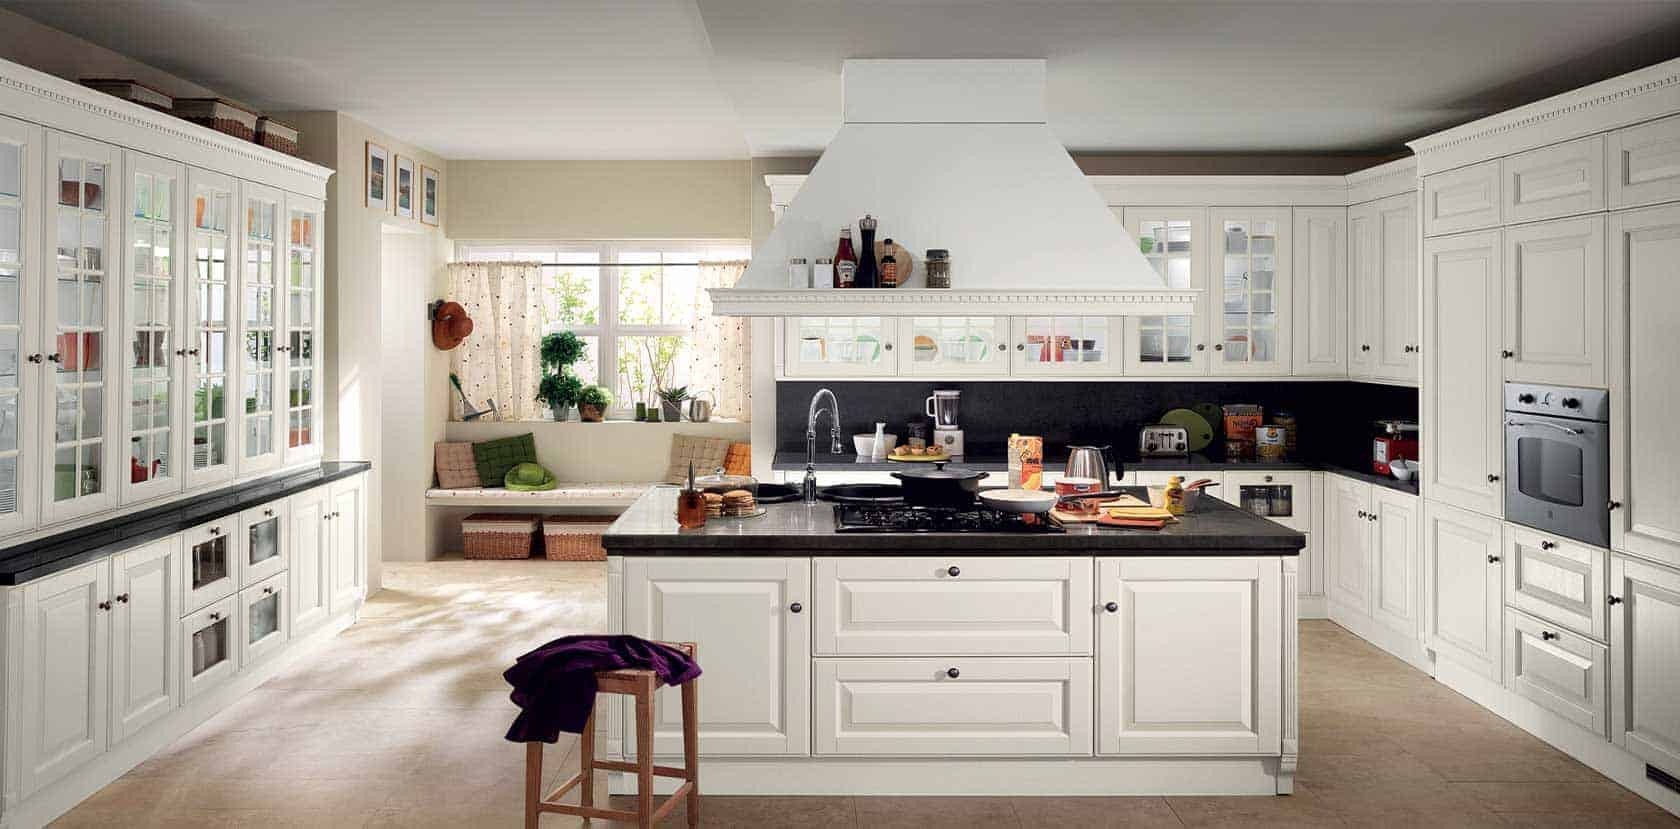 designer kitchens melbourne classic kitchens melbourne kitchen mart 174 kitchen 763